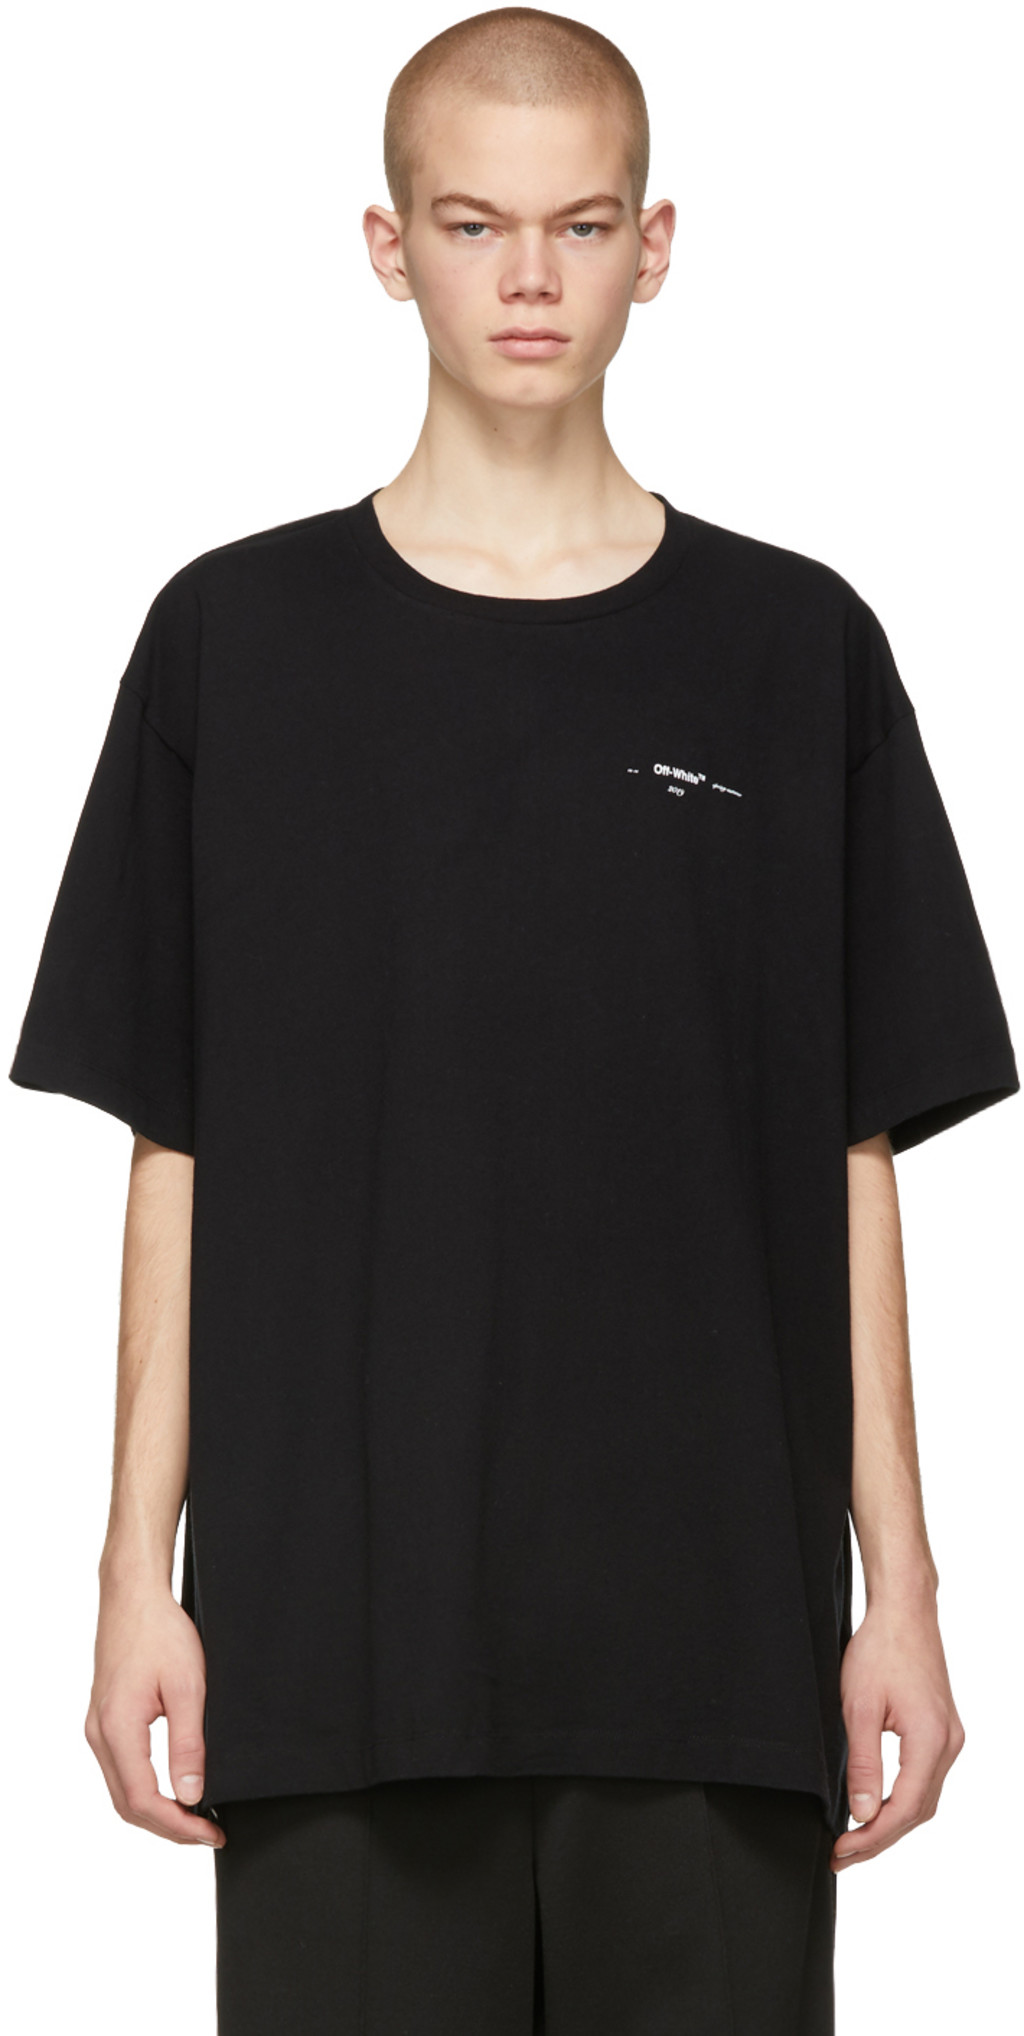 Off-white for Men SS19 Collection  24a1ab955ac